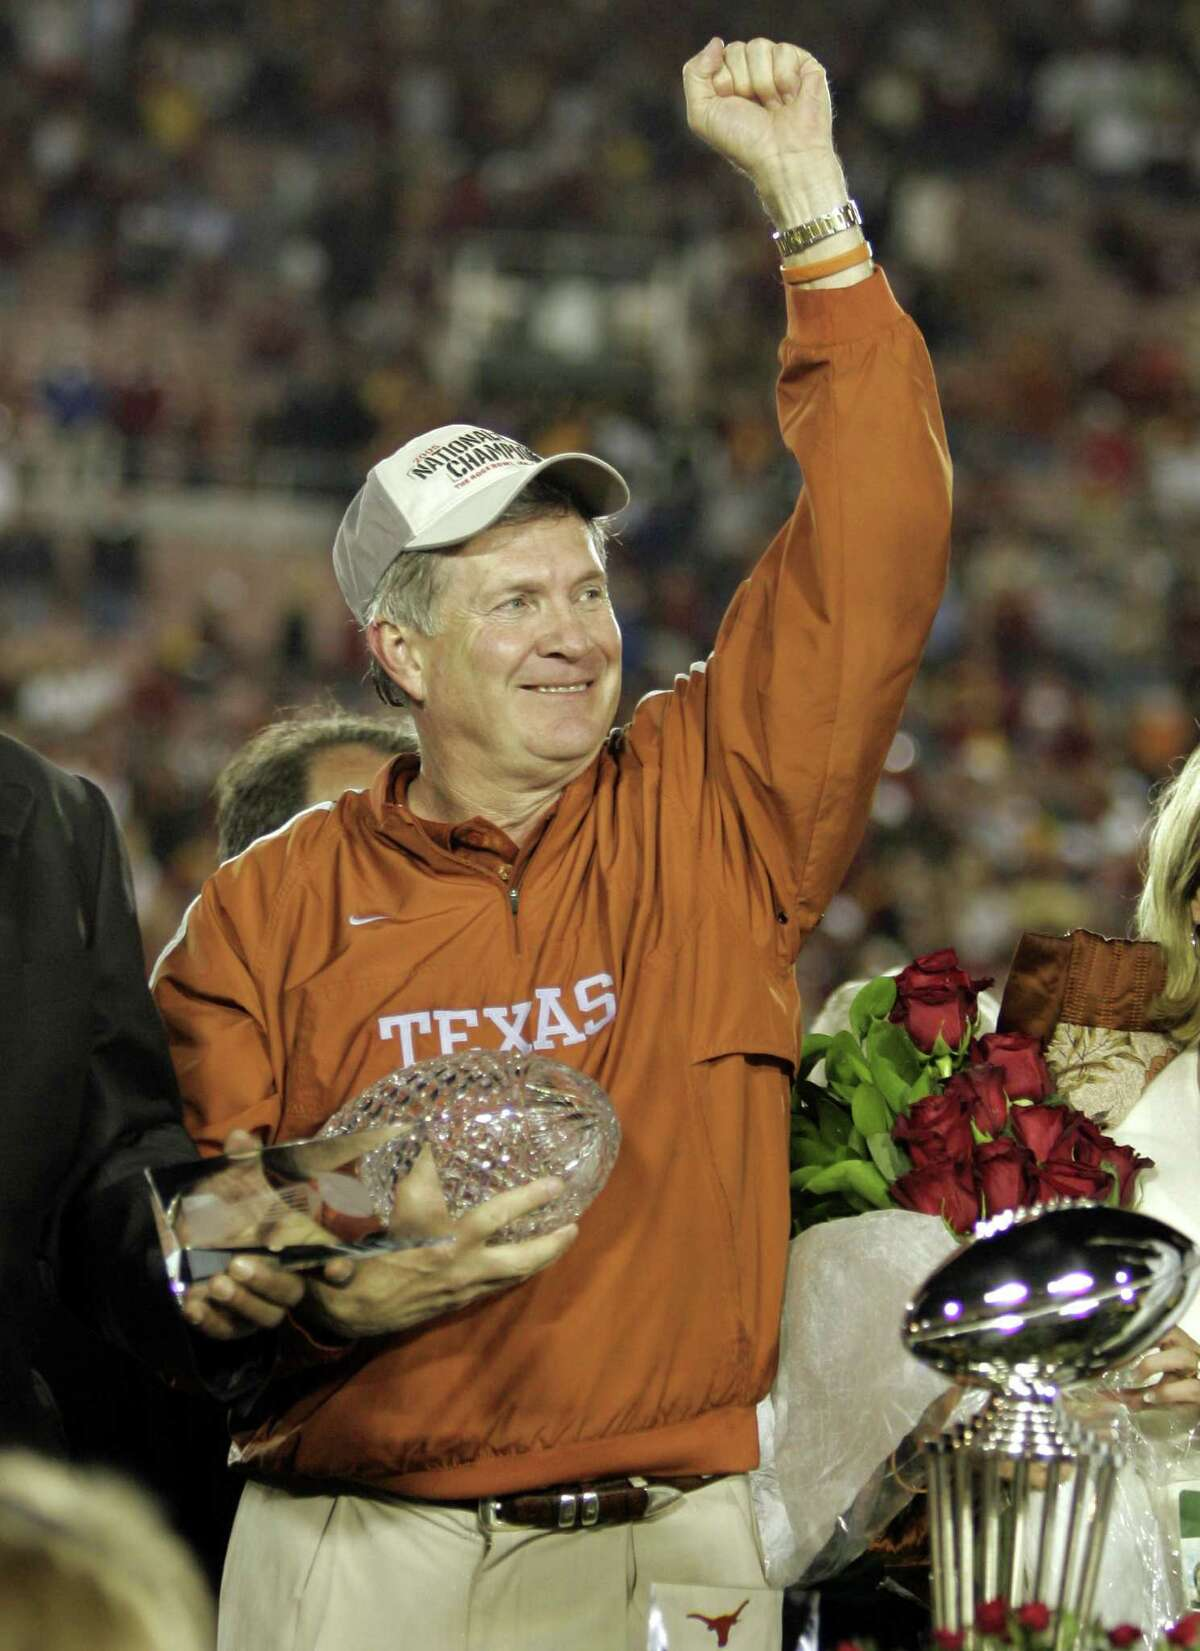 FILE - In this Jan. 4, 2006, file photo, Texas head coach Mack Brown celebrates with the championship trophy after Texas beat Southern California 41-38 in the Rose Bowl, the national championship college football game in Pasadena, Calif. Brown has stepped down as coach and that the Alamo Bowl against Oregon on Dec. 30 will be his last game with the Longhorns, the school announced Saturday, Dec. 14, 2013. (AP Photo/ Mark J. Terrill, File)